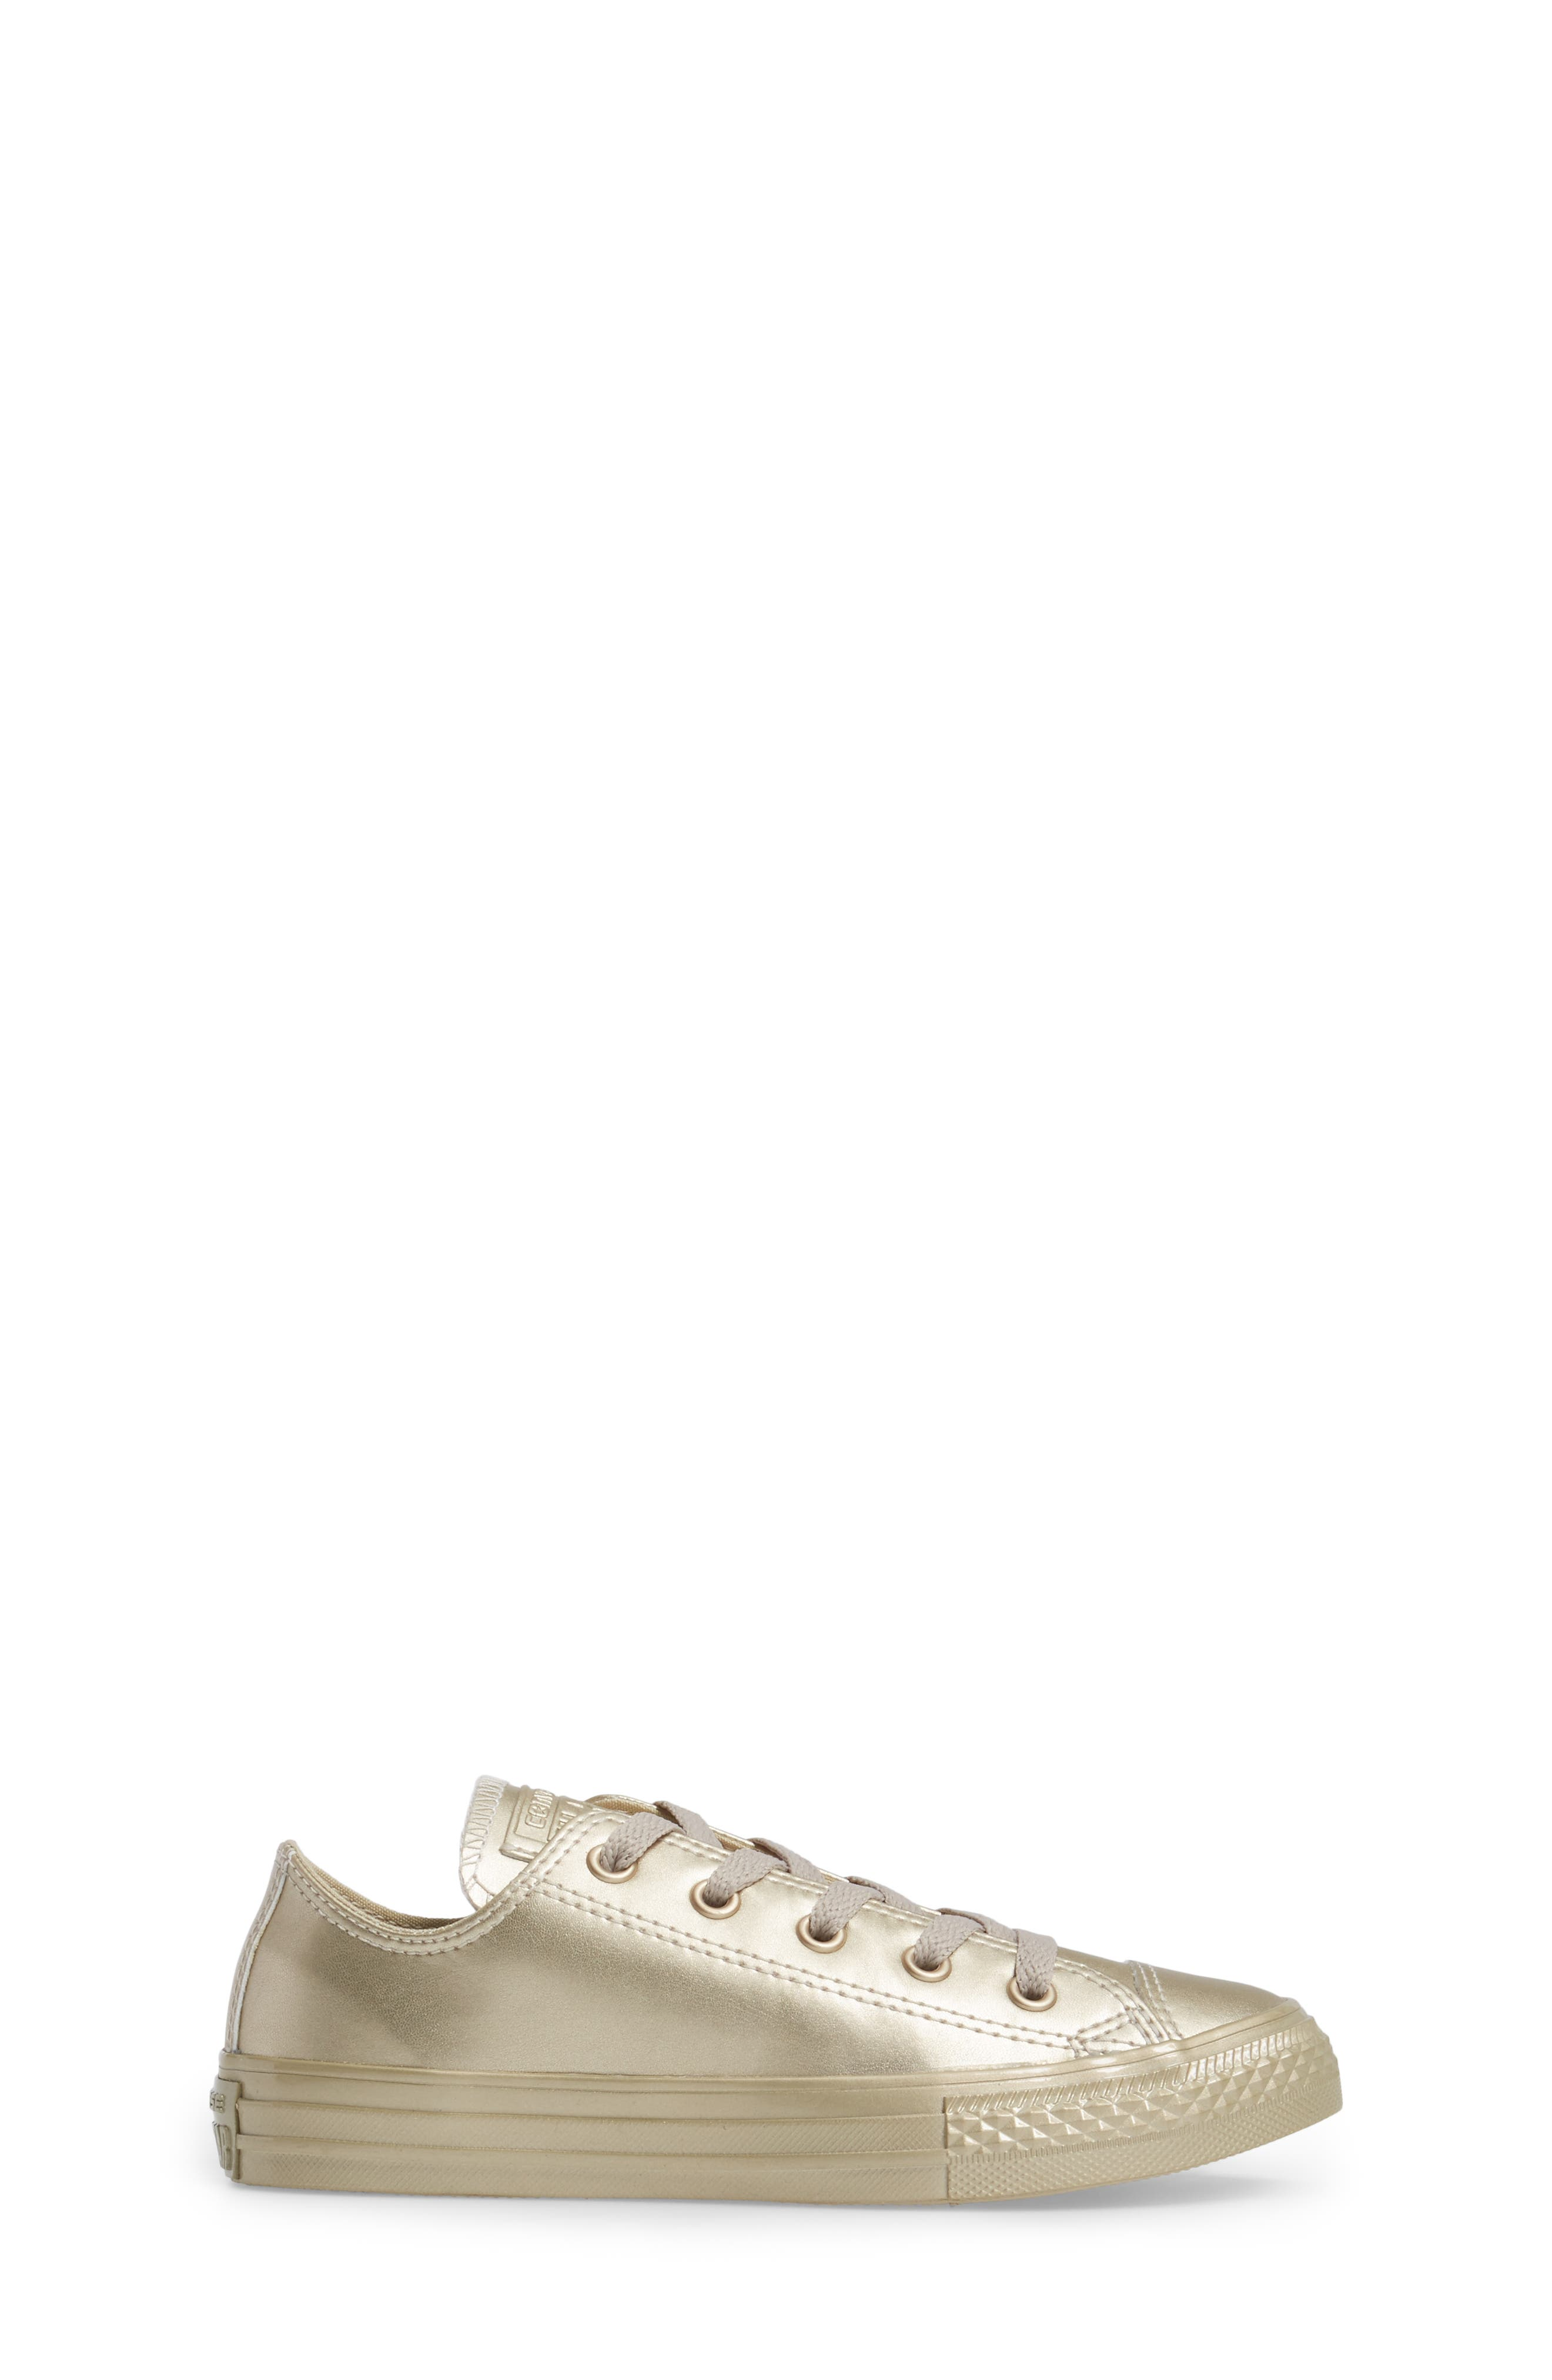 Chuck Taylor<sup>®</sup> All Star<sup>®</sup> Mono Metallic Low Top Sneaker,                             Alternate thumbnail 3, color,                             710